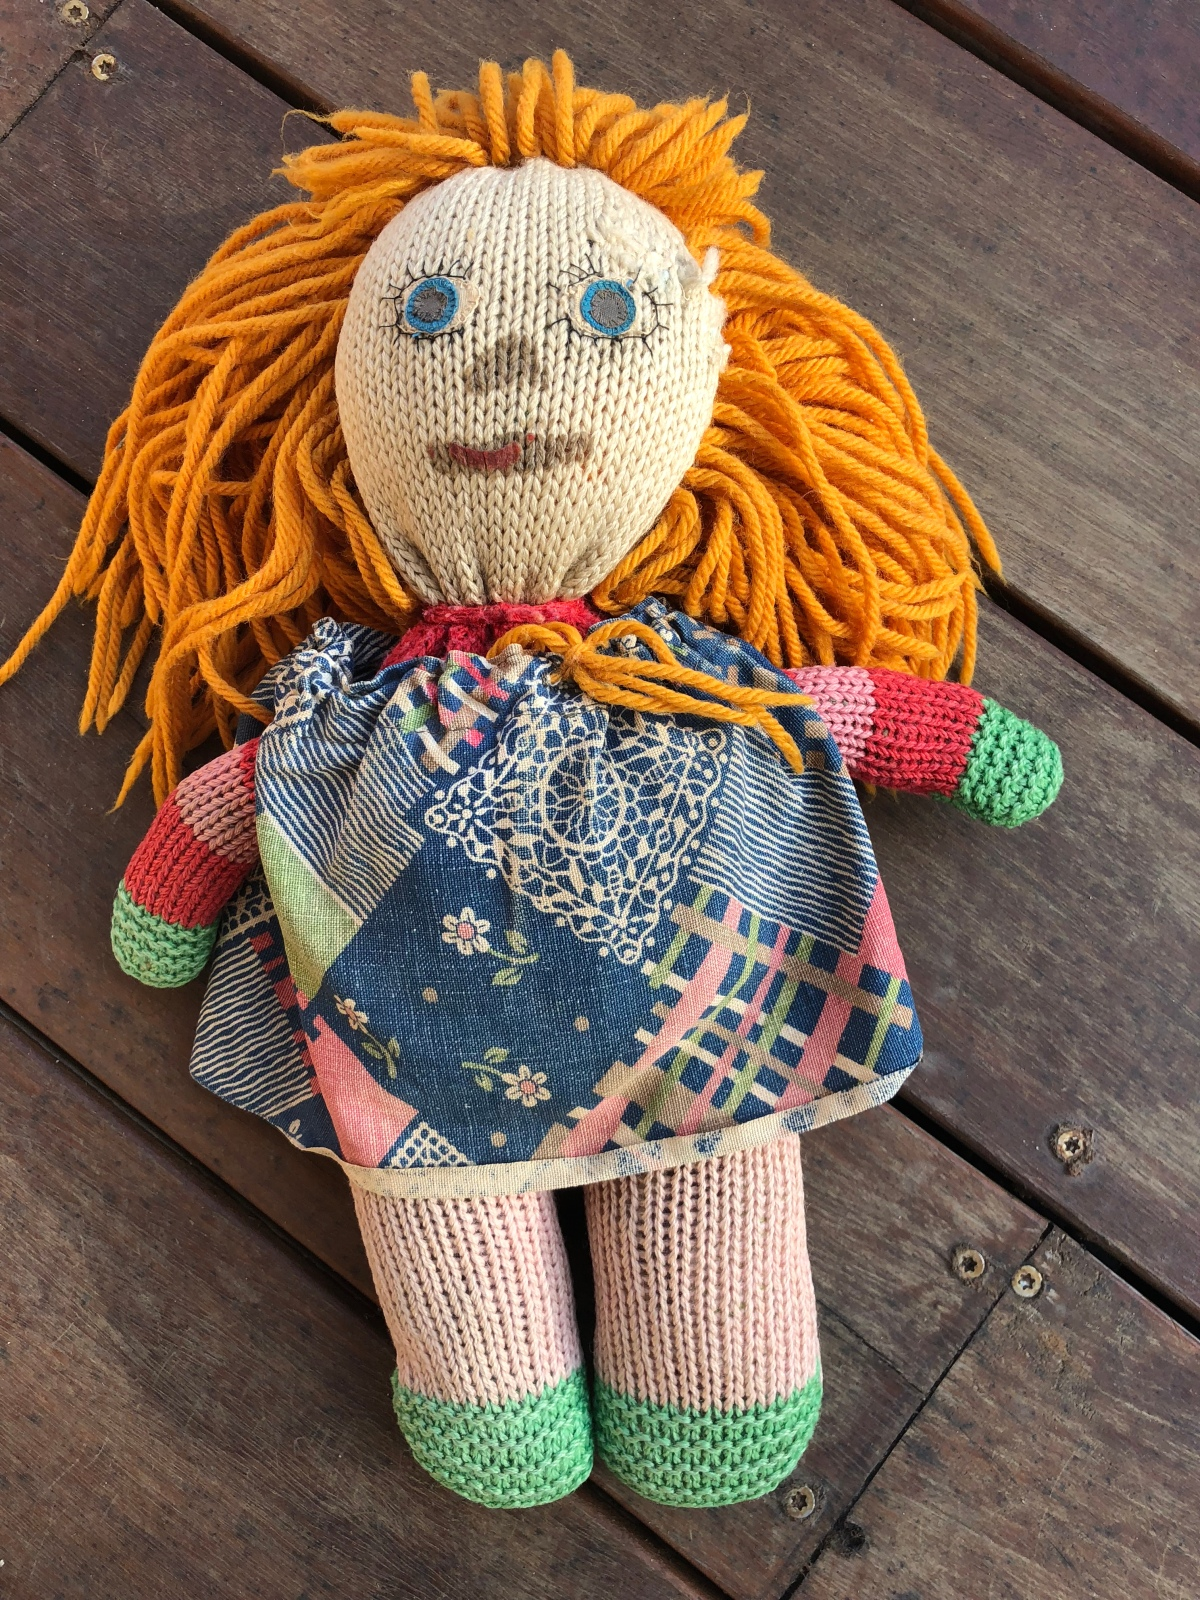 Doll, handmade doll, knitted toy